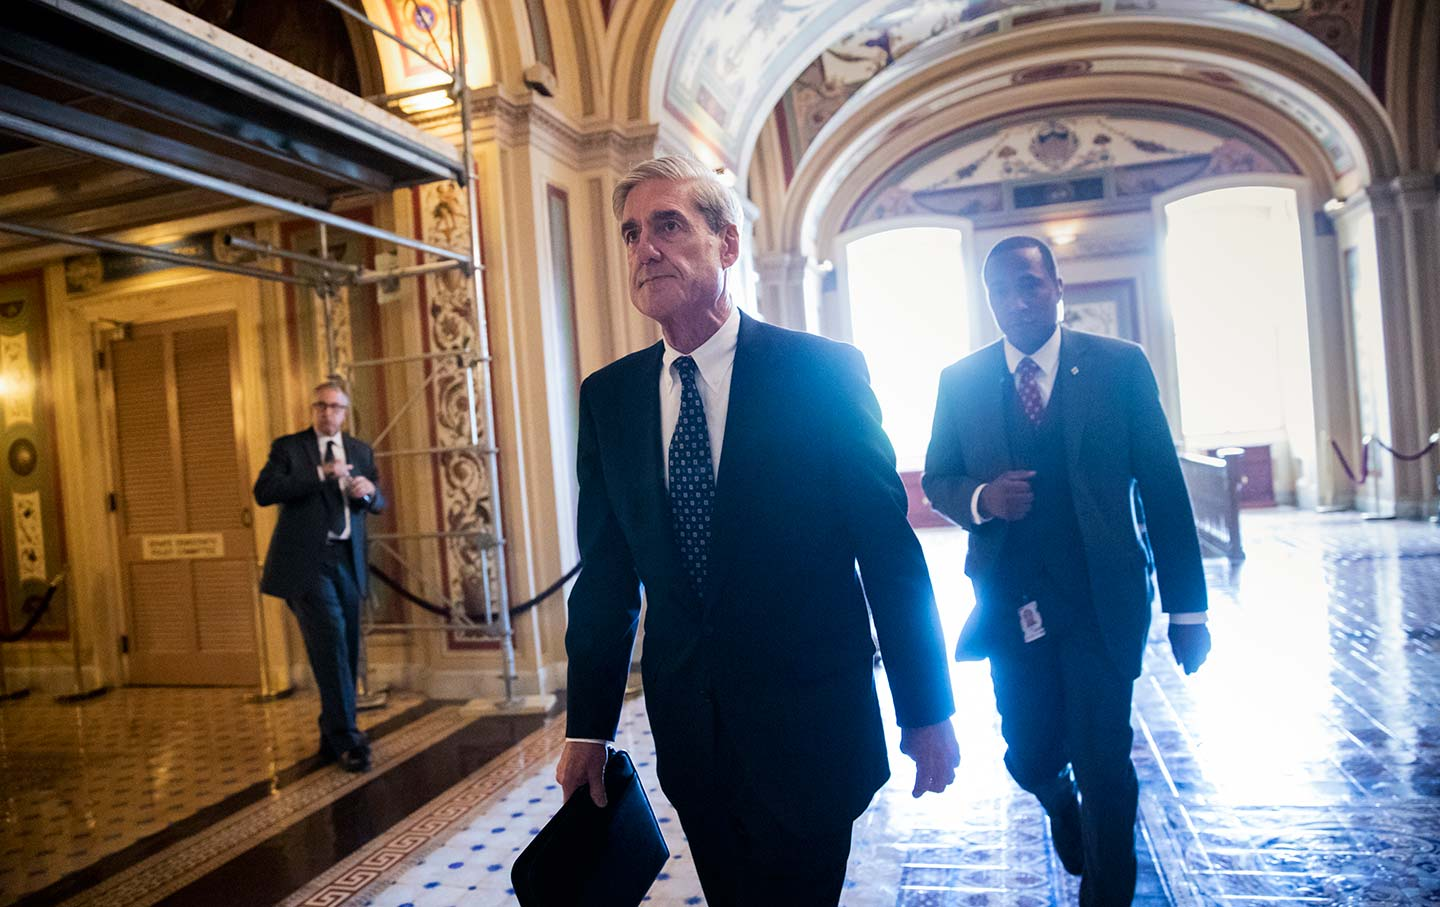 Mueller walks through halls of capitol building